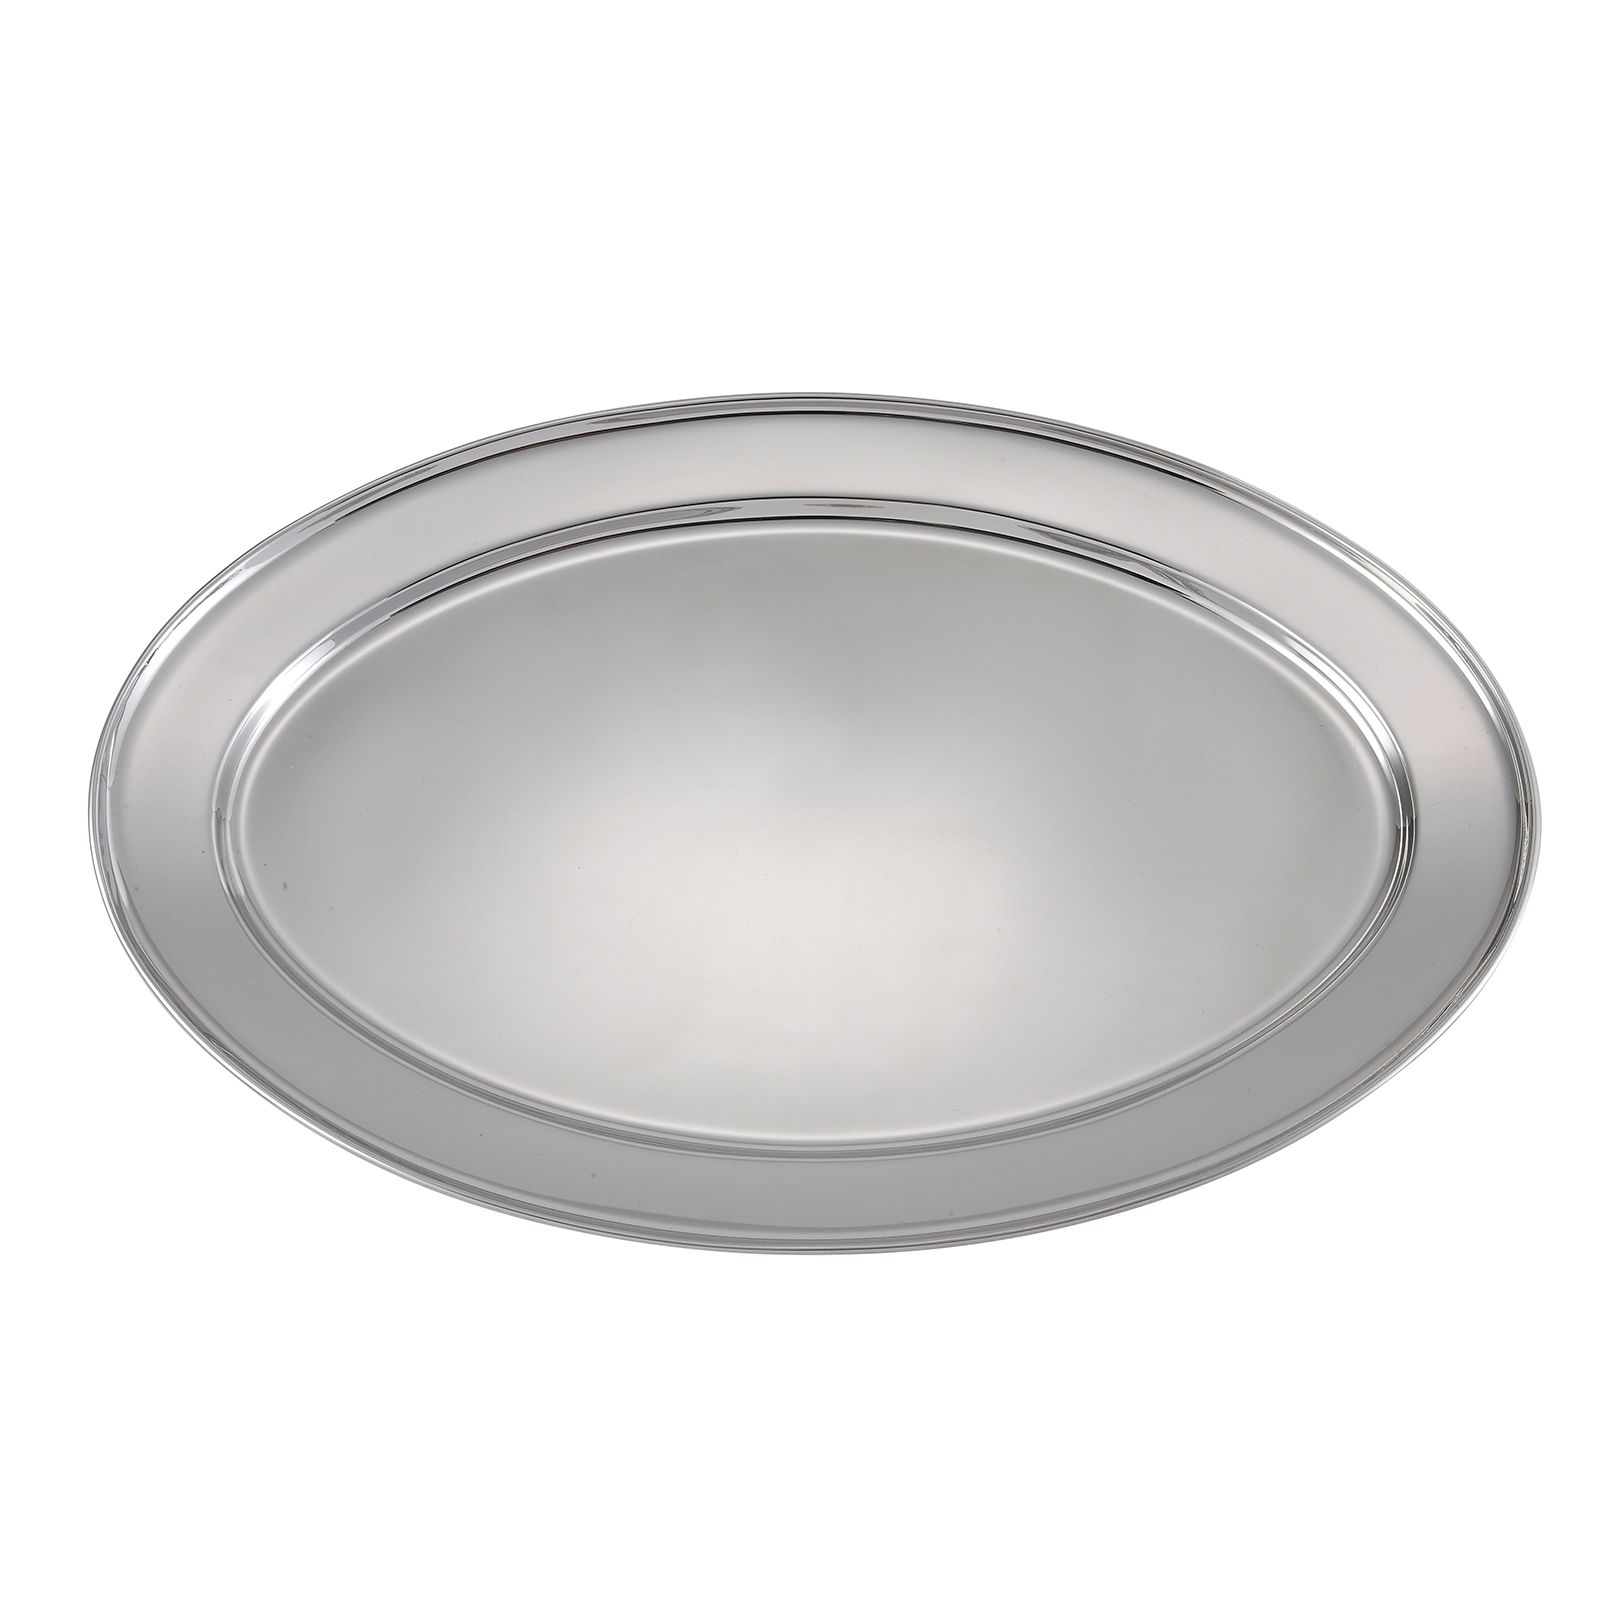 Winco OPL-18 platter, stainless steel